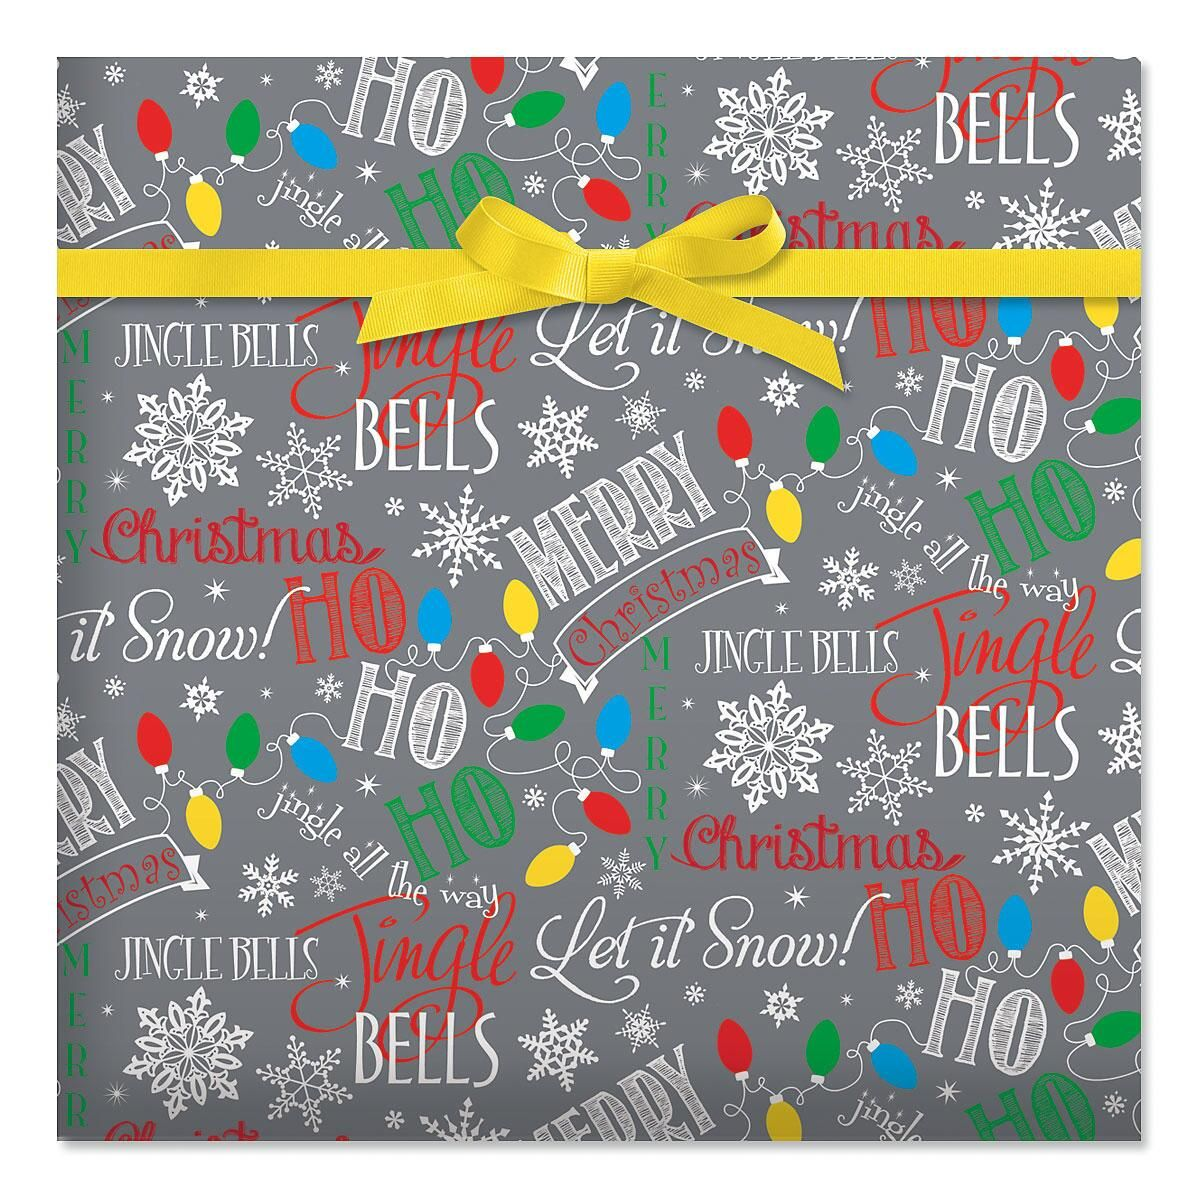 Let It Snow Jumbo Rolled Gift Wrap